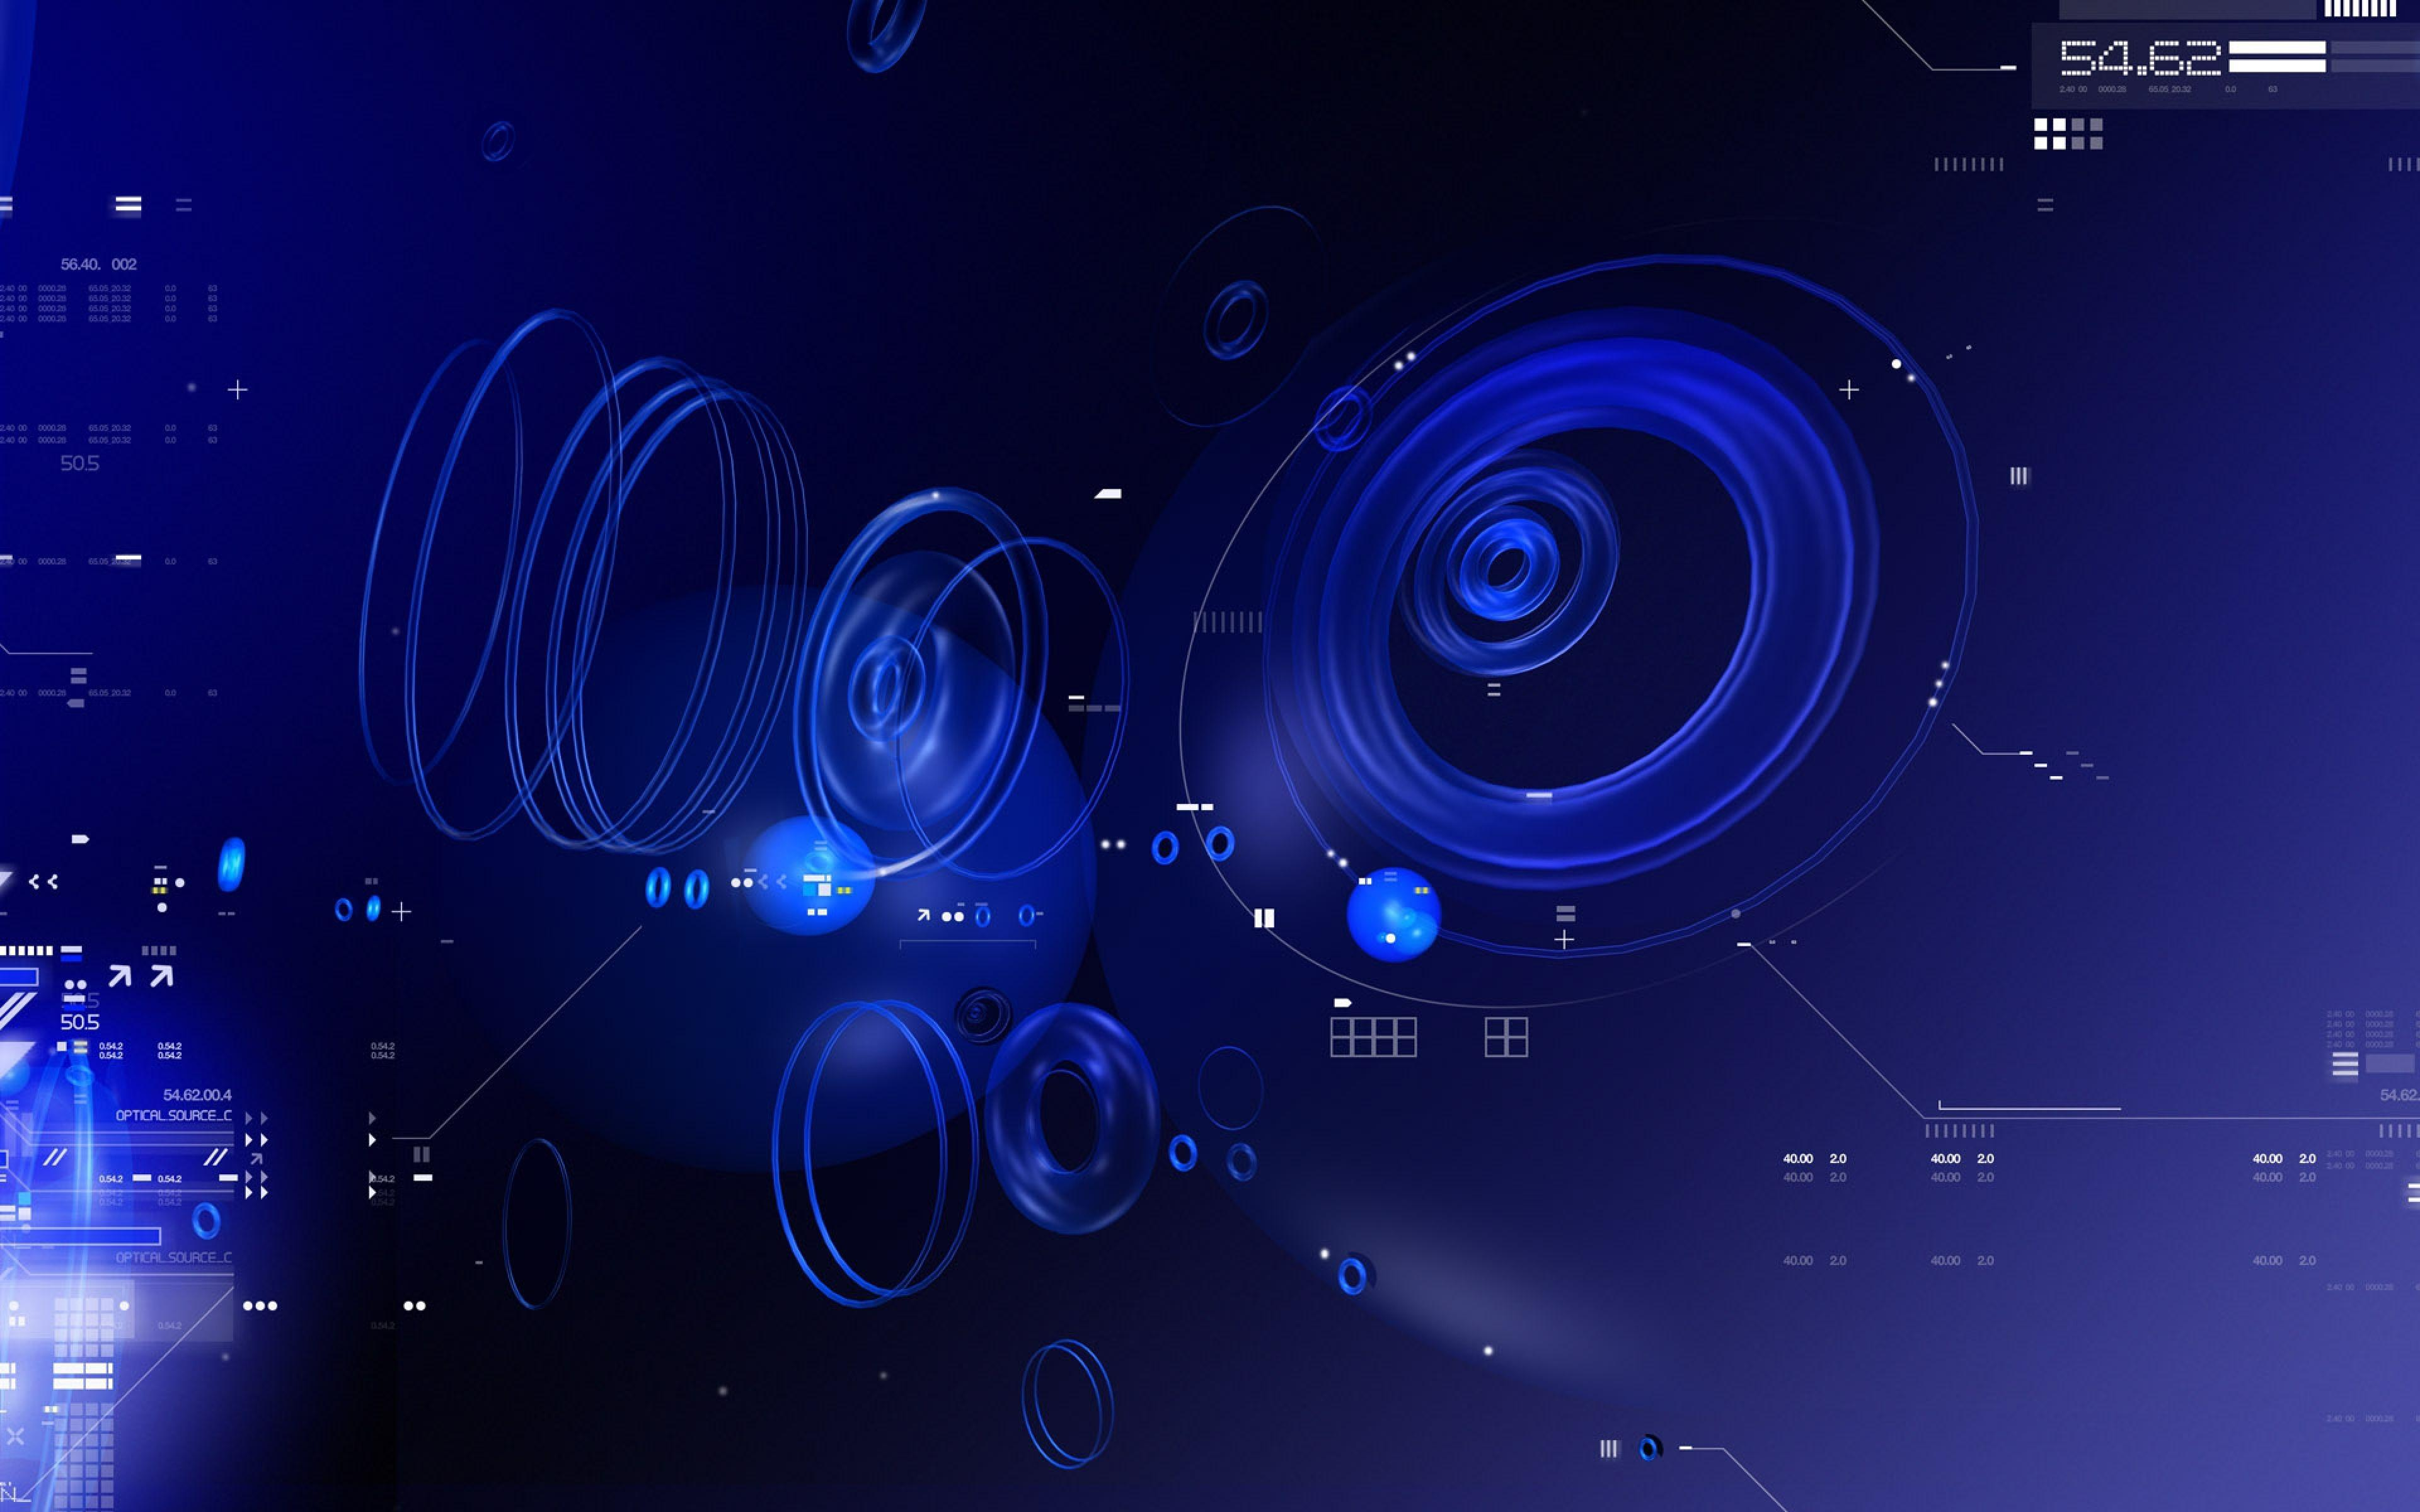 3840x2400 Wallpapers blue, black, abstract, white, circles, numbers